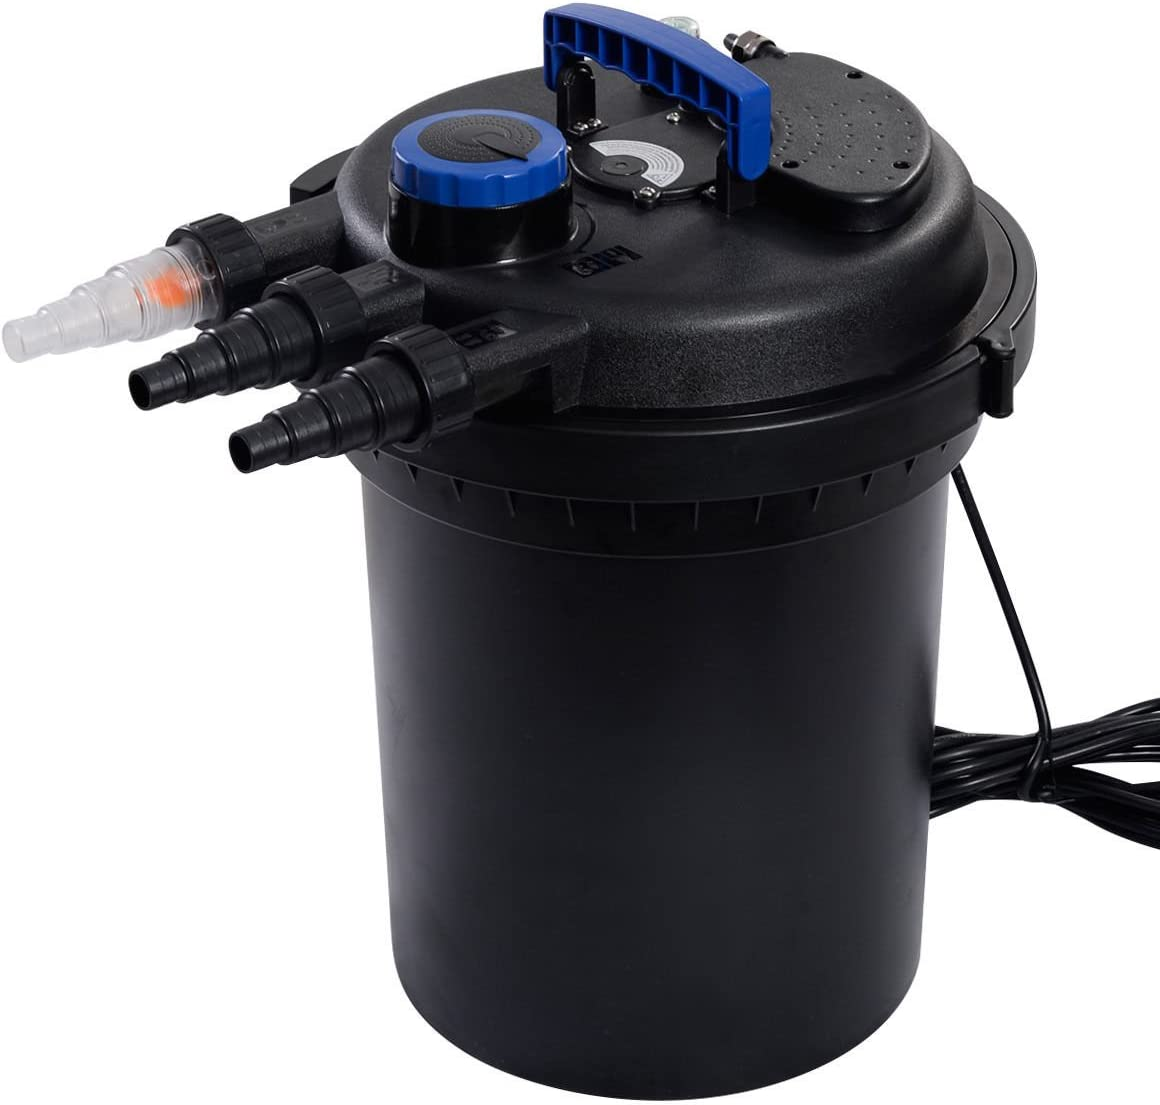 Goplus Pressure Bio Filter for Pond